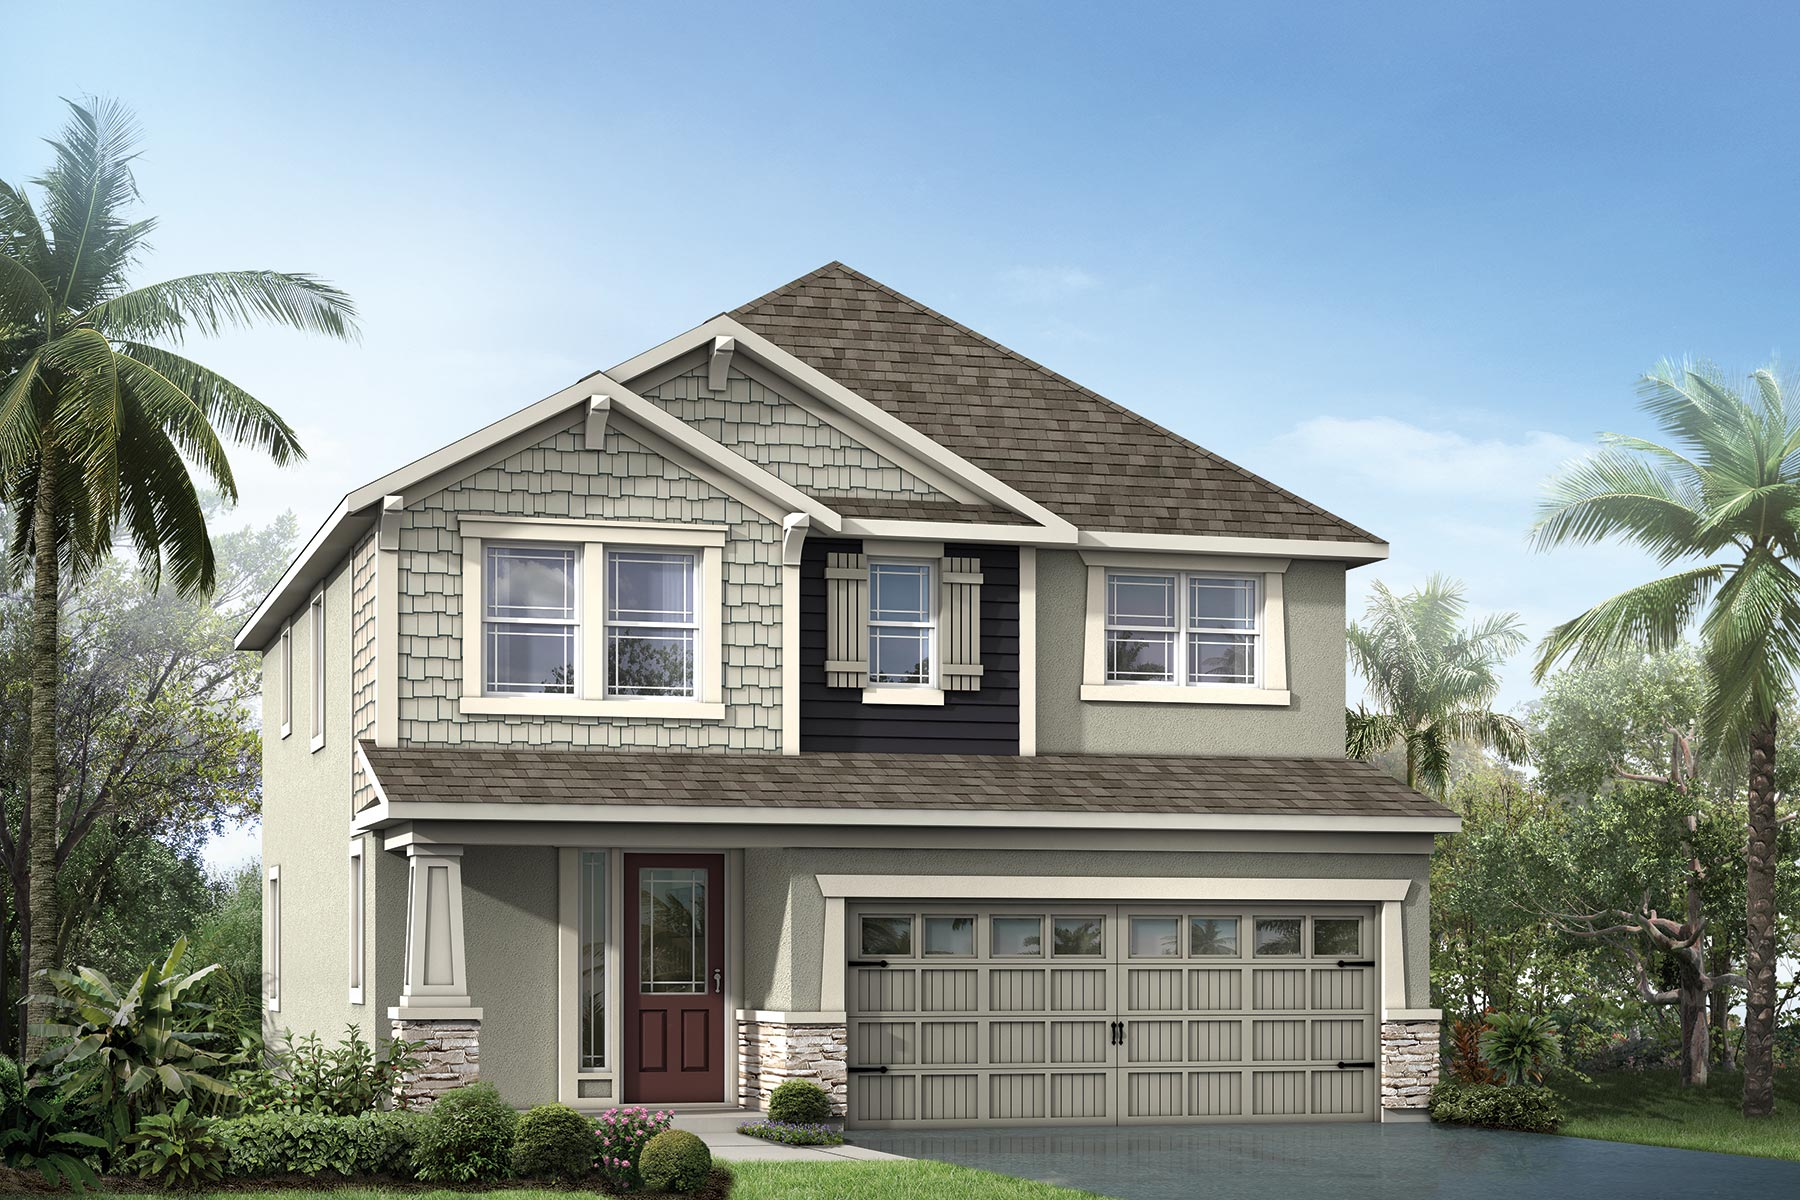 Holly Plan Elevation Front at Tapestry in Kissimmee Florida by Mattamy Homes